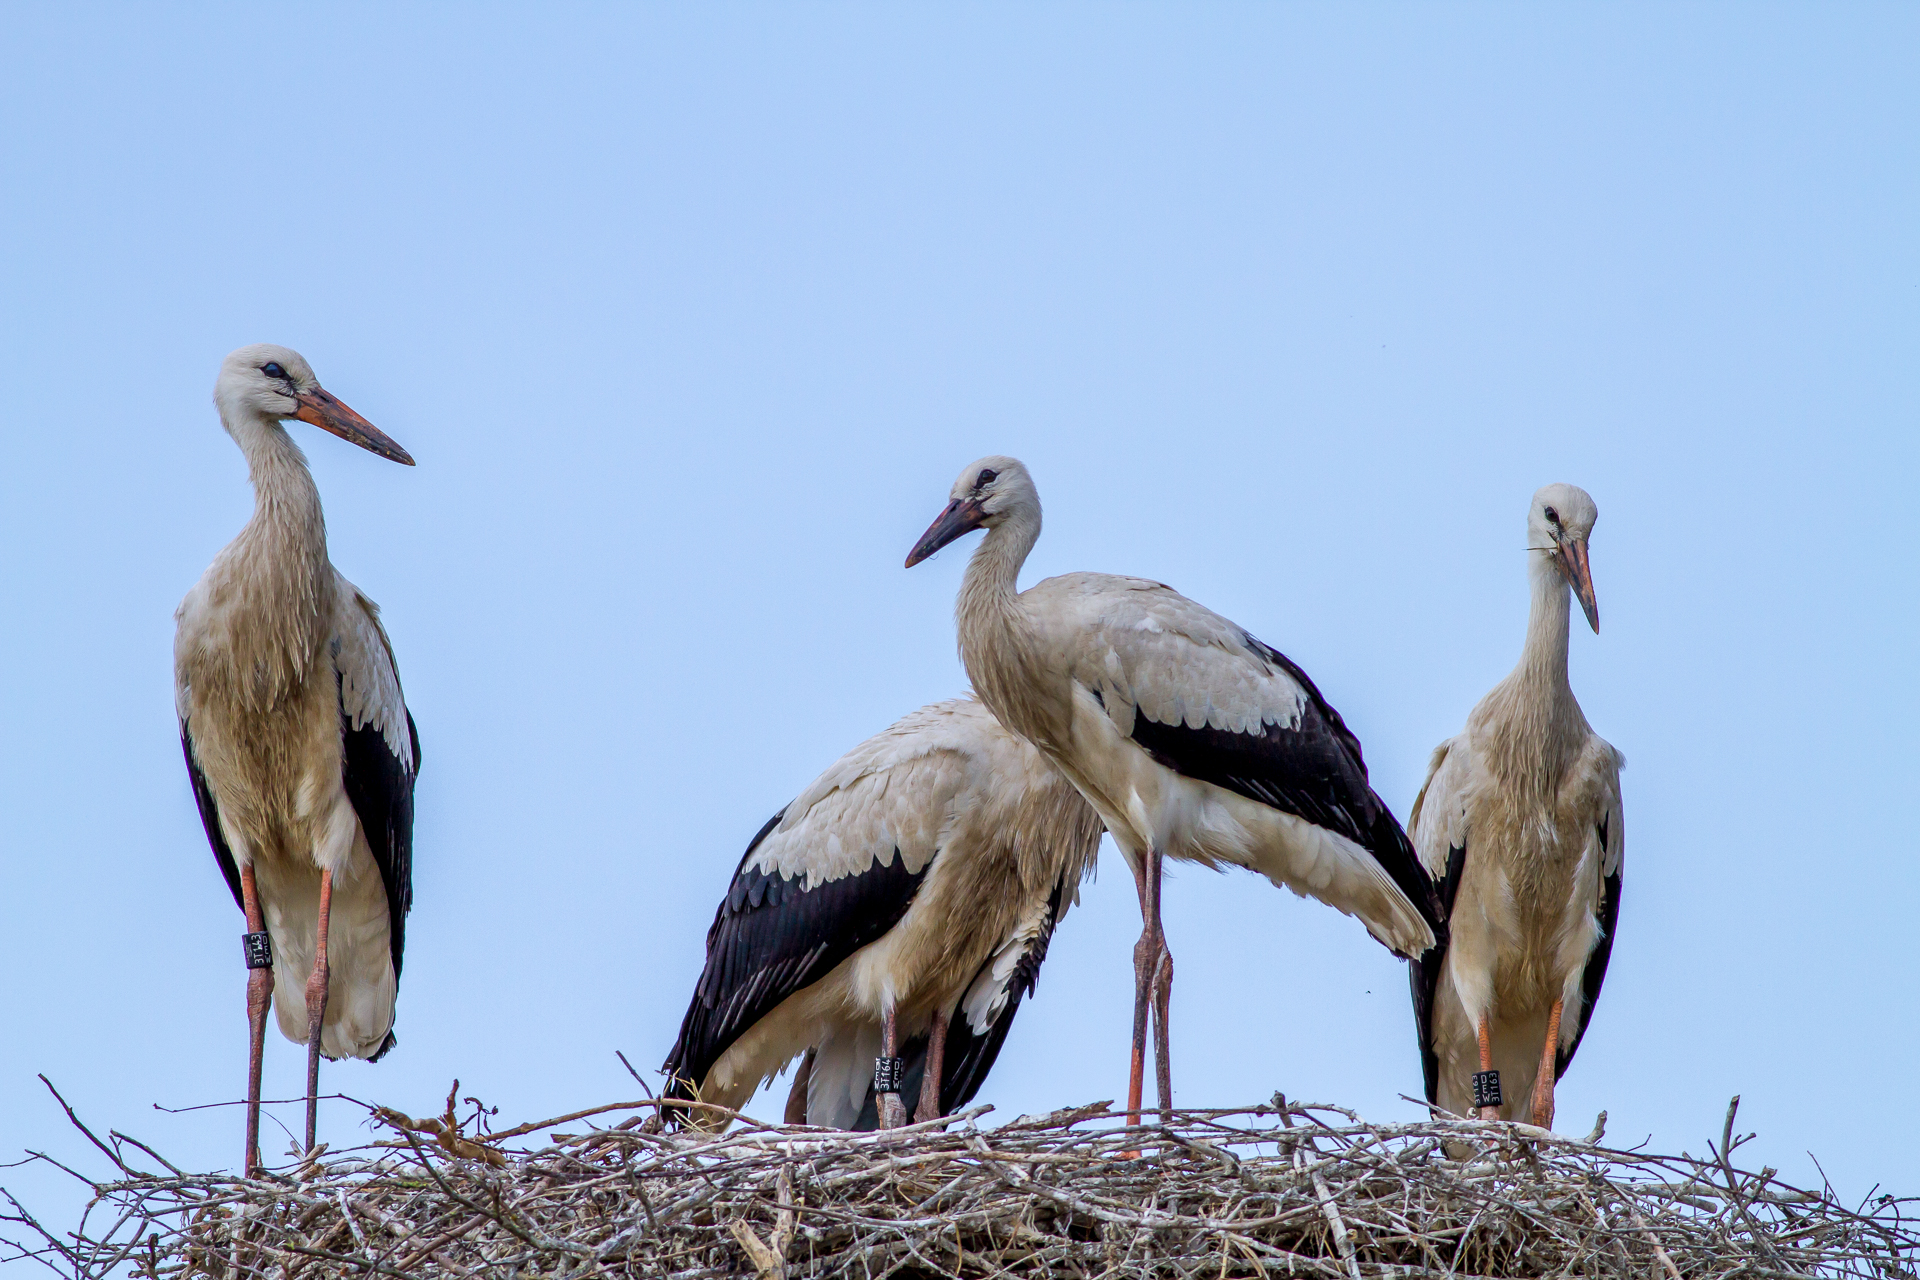 Weißstorch achwuchs am Nest